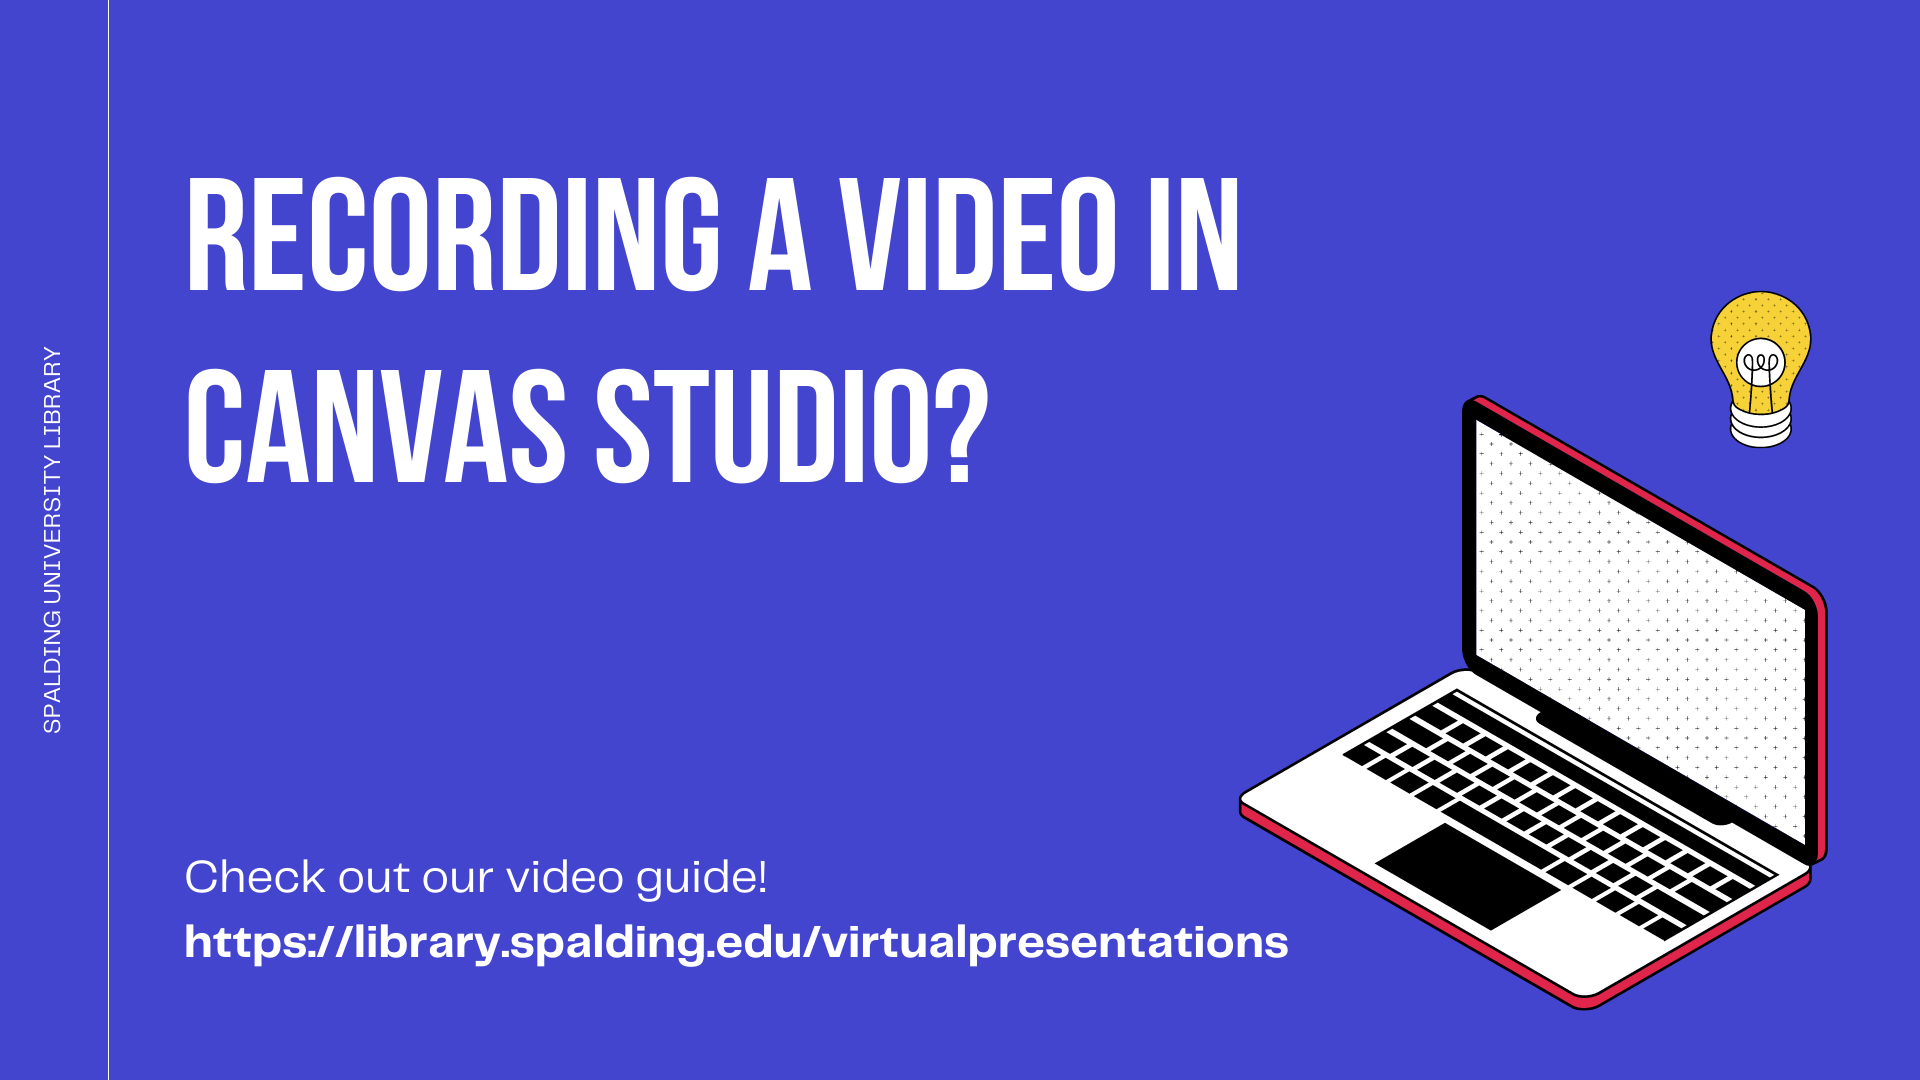 Recording a video in Canvas Studio? Check out our video guide! https://library.spalding.edu/virtualpresentations